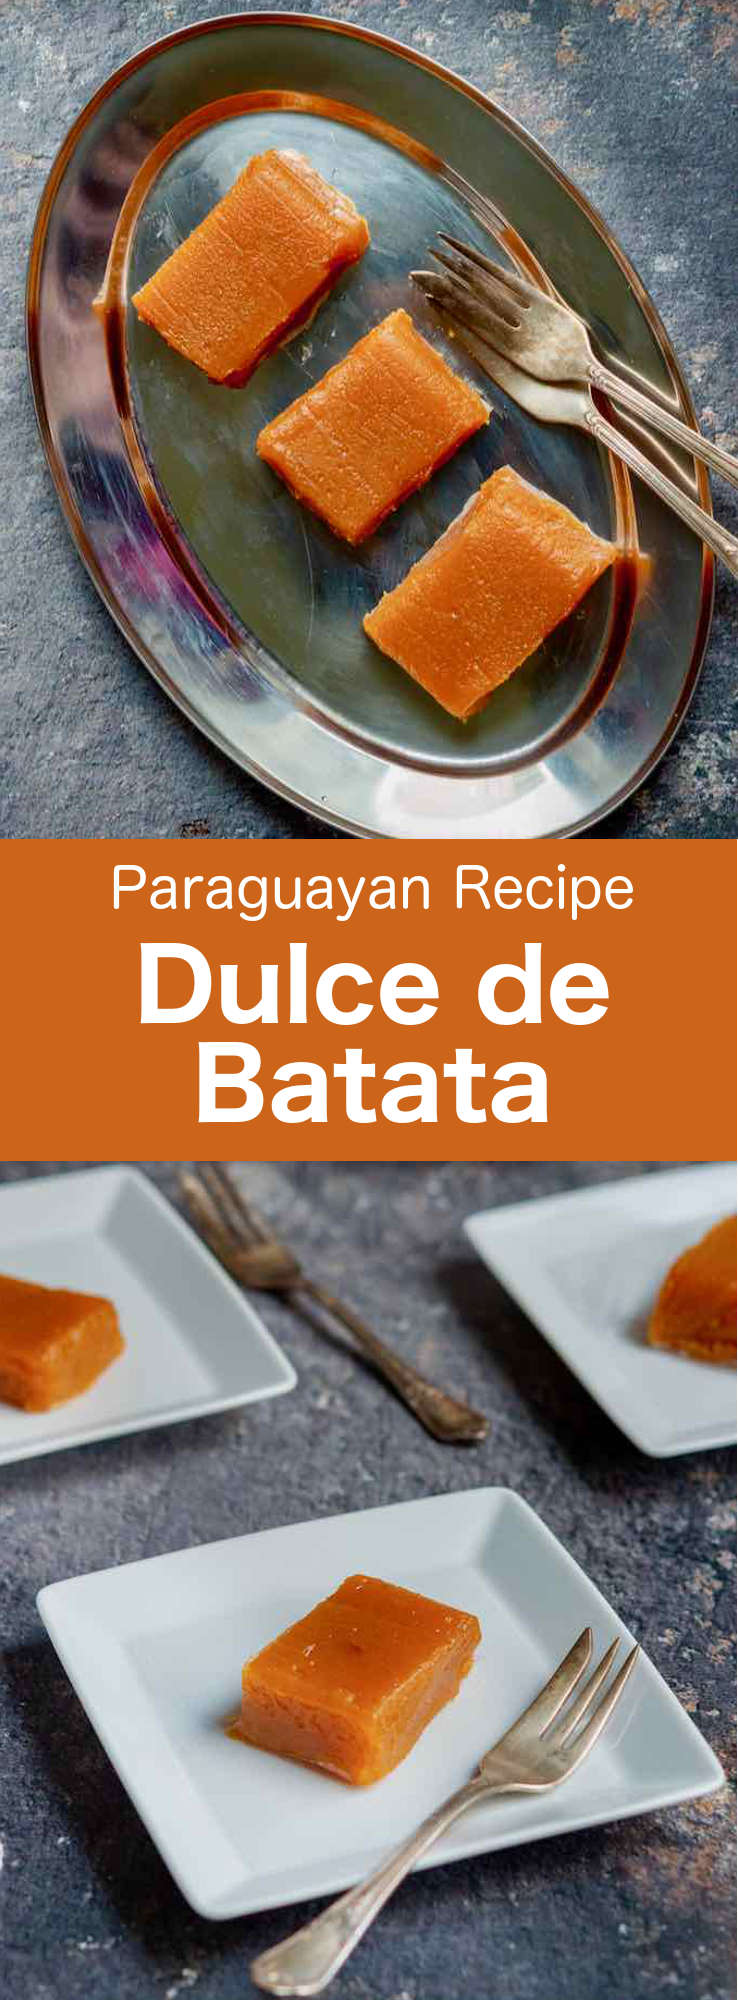 Dulce de batata is a popular jelly-like Paraguayan candy made with puréed sweet potatoes. It is a simple and irresistible sweet that can be served as an aperitif, a snack or like some natives do, even as a breakfast. #Paraguay #ParaguayanCuisine #ParaguayanRecipe #LatinAmericanCuisine #LatinAmericanRecipe #SouthAmericanCuisine #SouthAmericanRecipe #WorldFlavors #196flavors